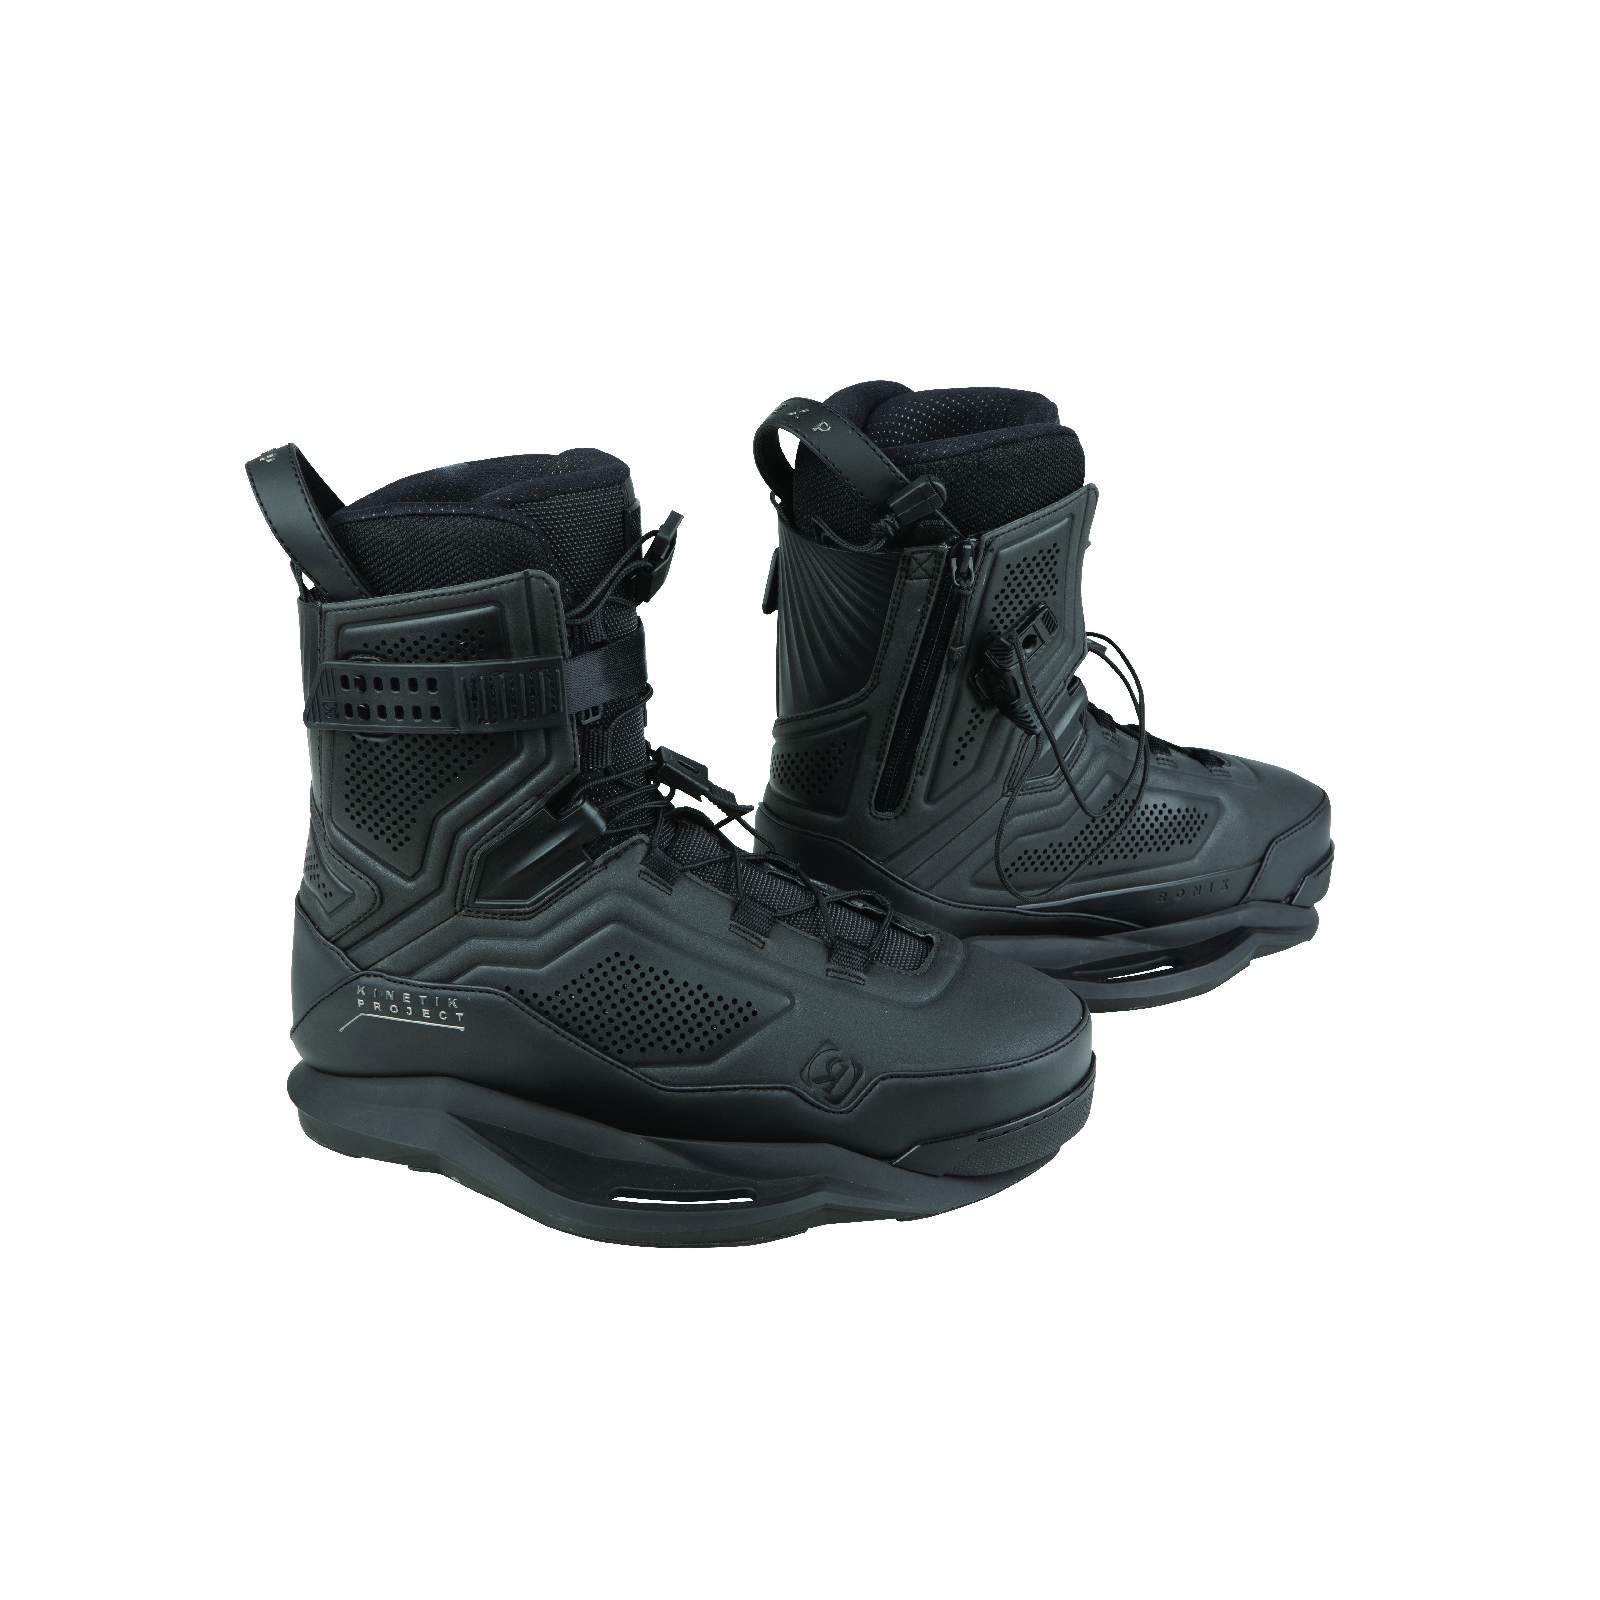 KINETIK PROJECT EXP INTUITION  - FLASH BLACK BOOT RONIX 2019